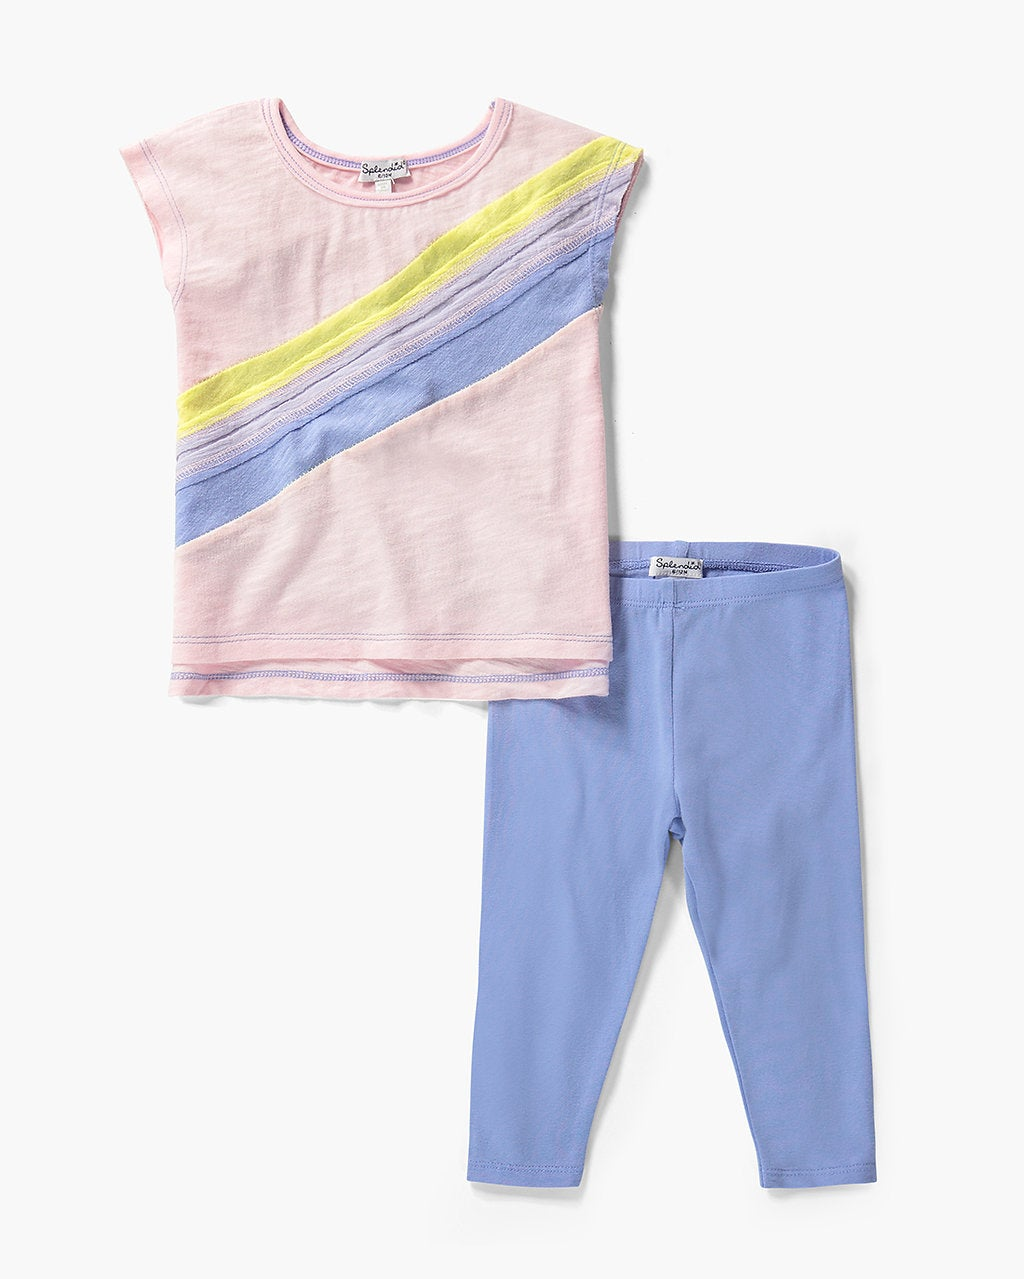 Splendid Baby Girl Rainbow Top Set